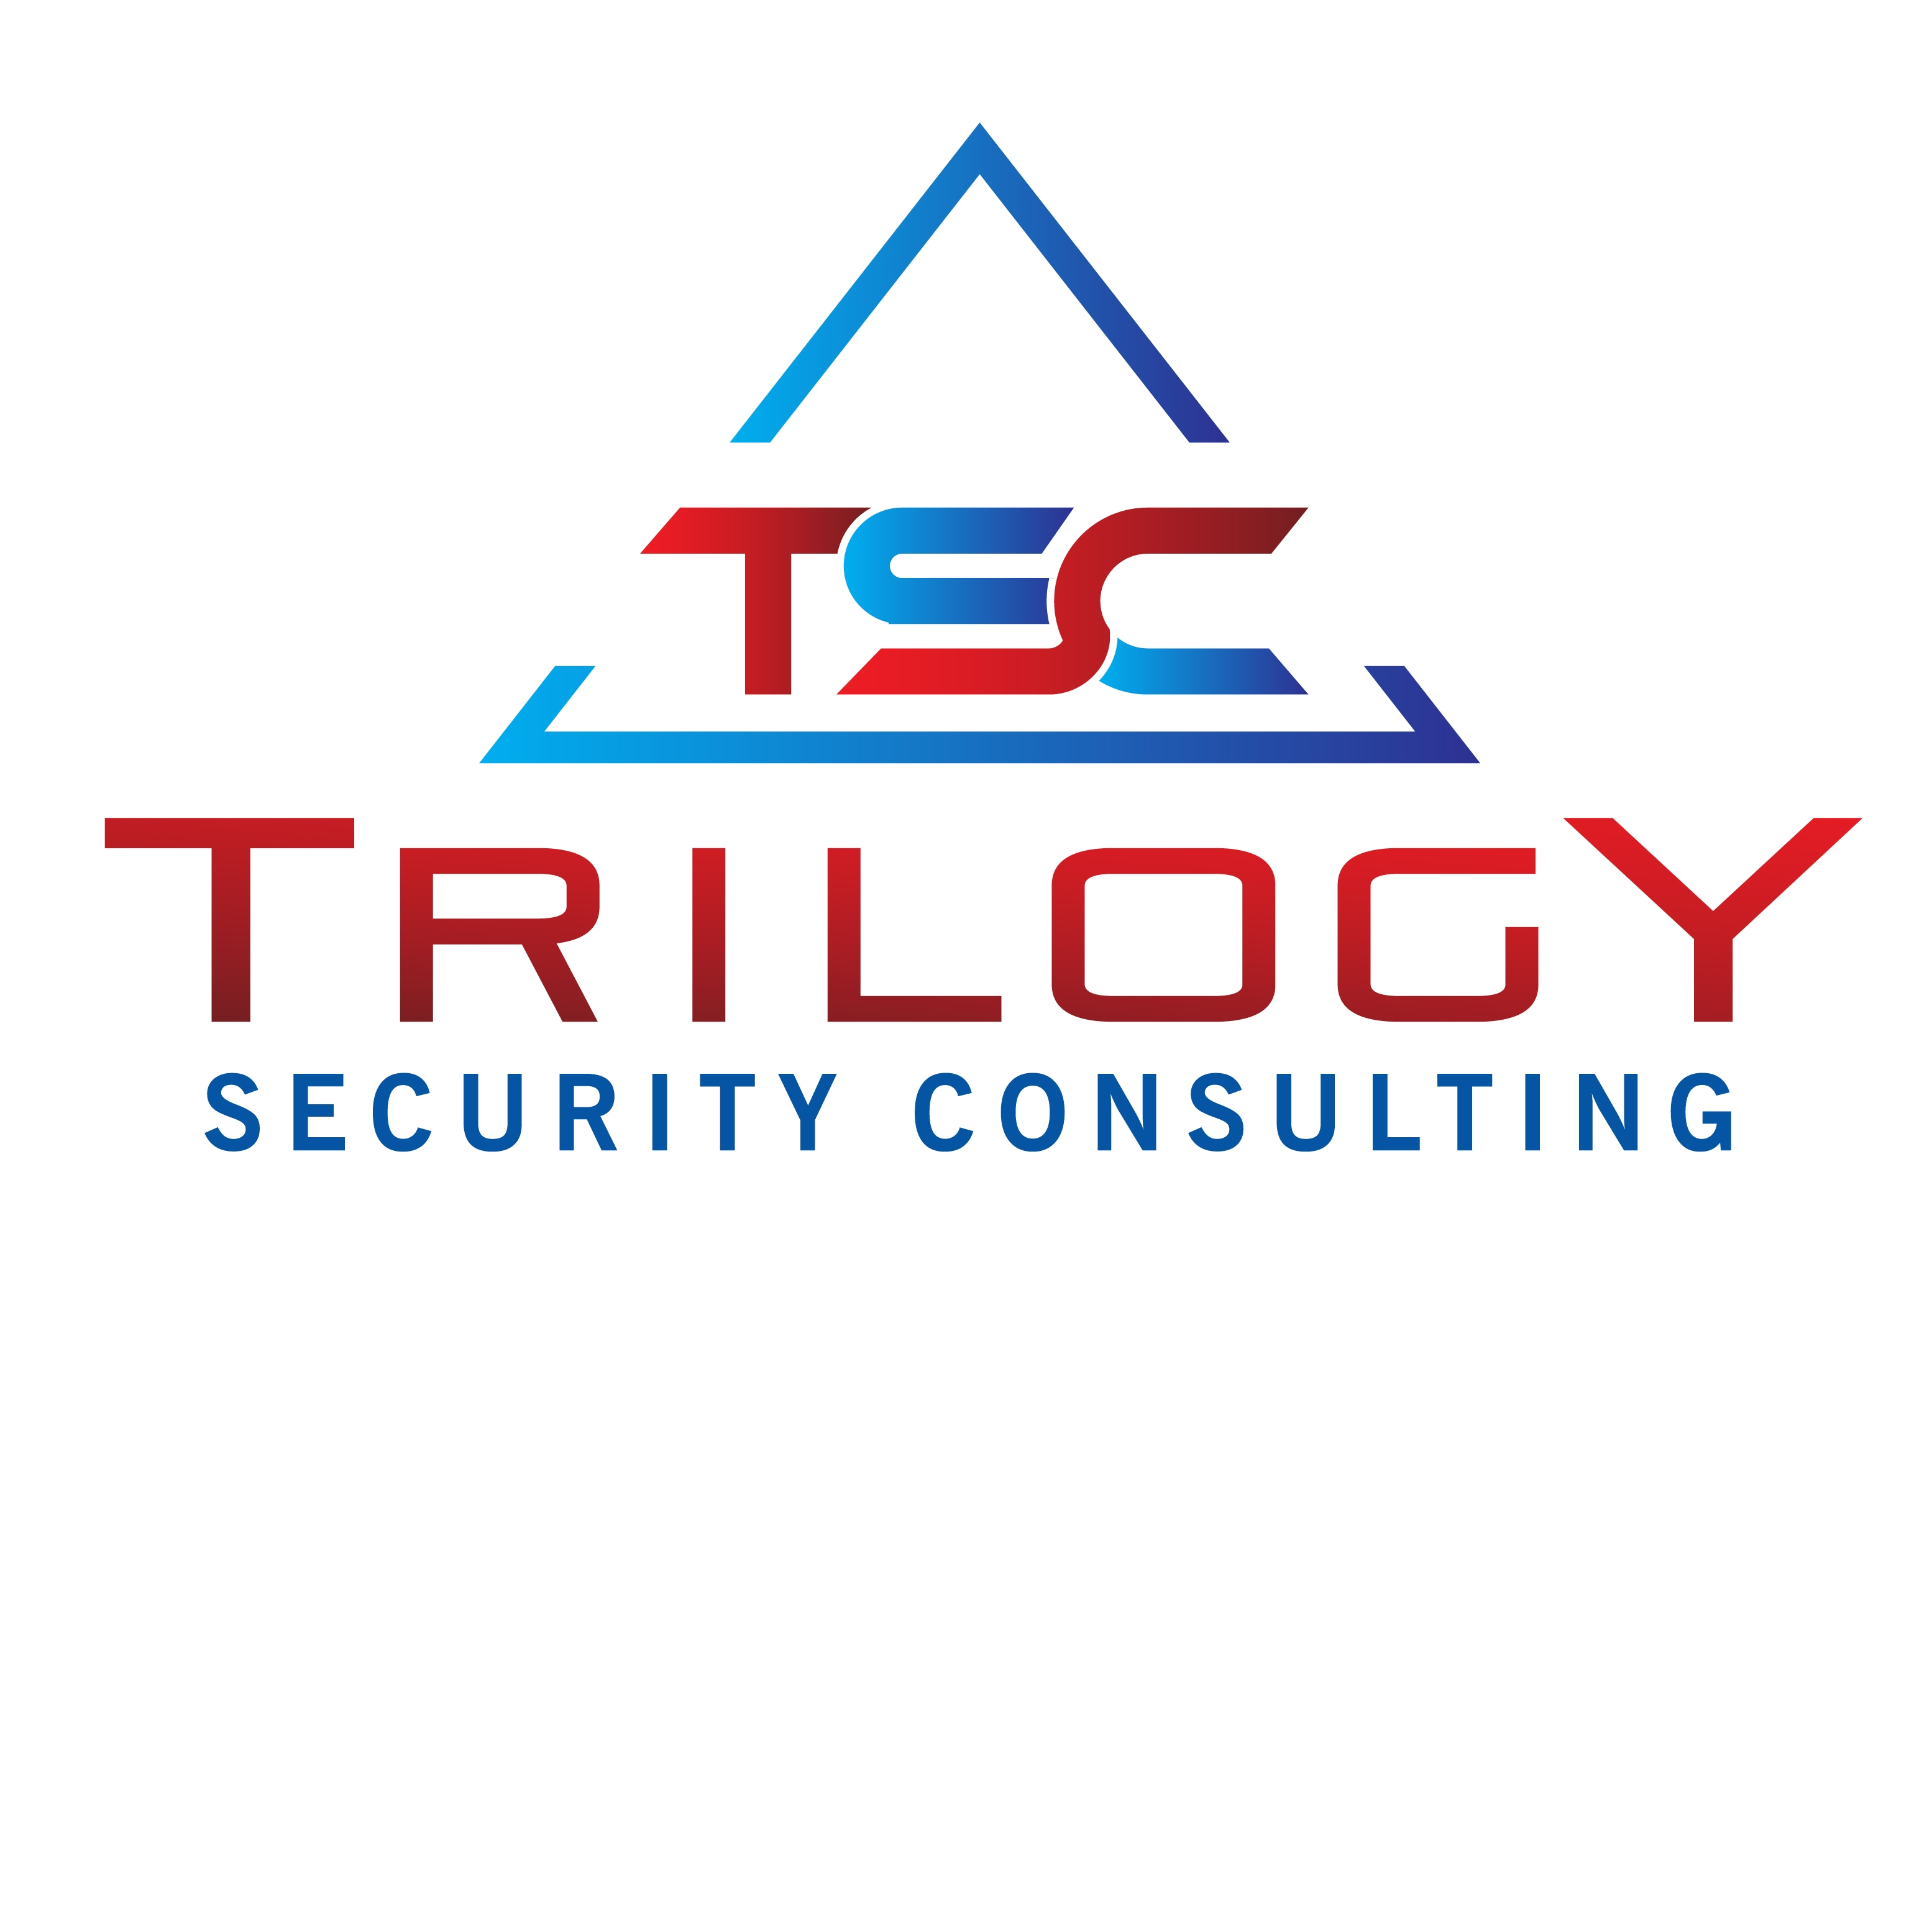 Trilogy Security Consulting